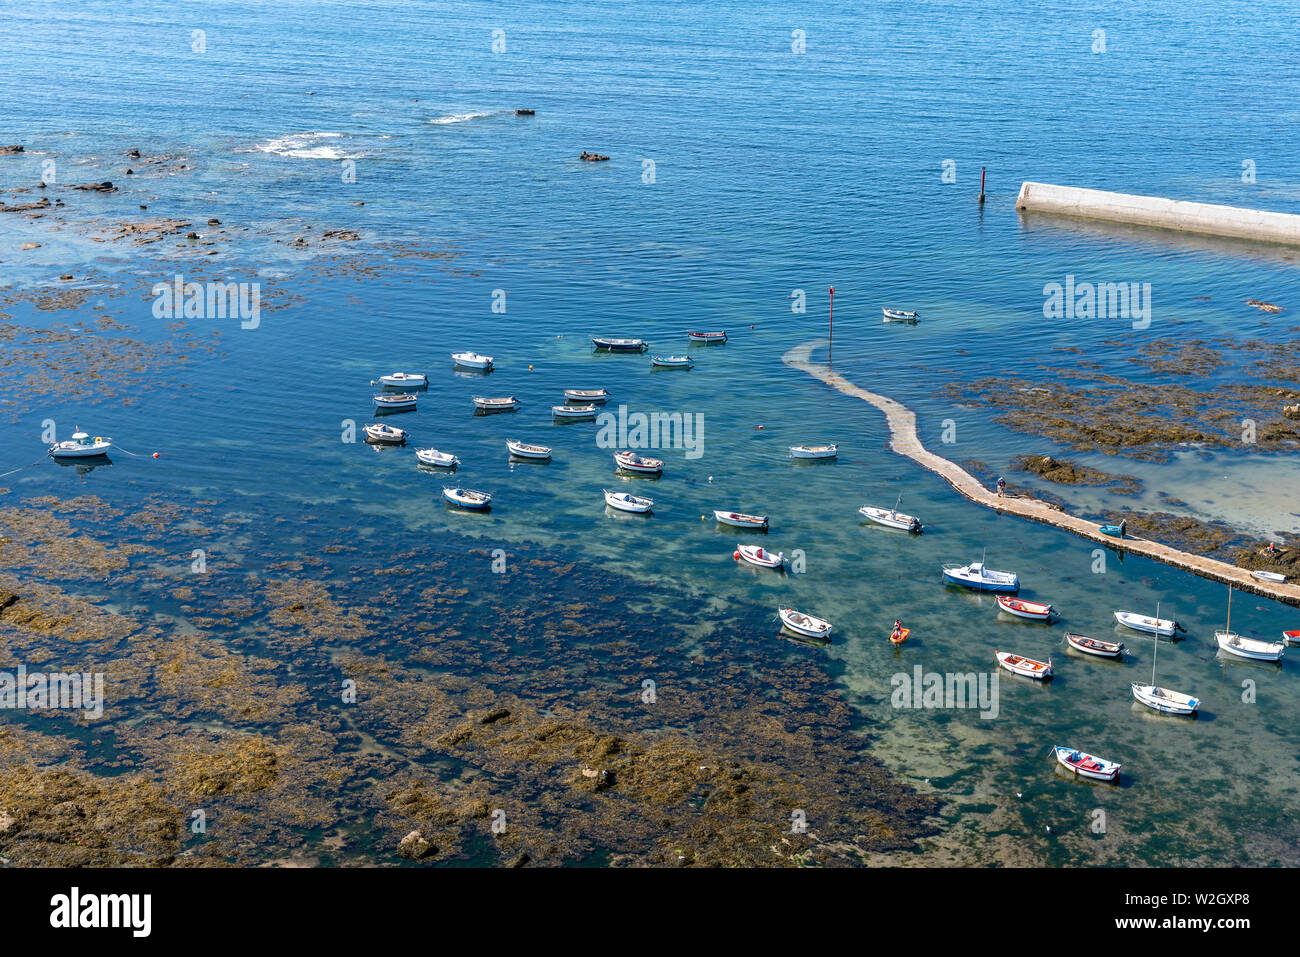 Penmarch, France - August 2, 2018: Aerial view of the harbour of Point Penmarch. Stock Photo